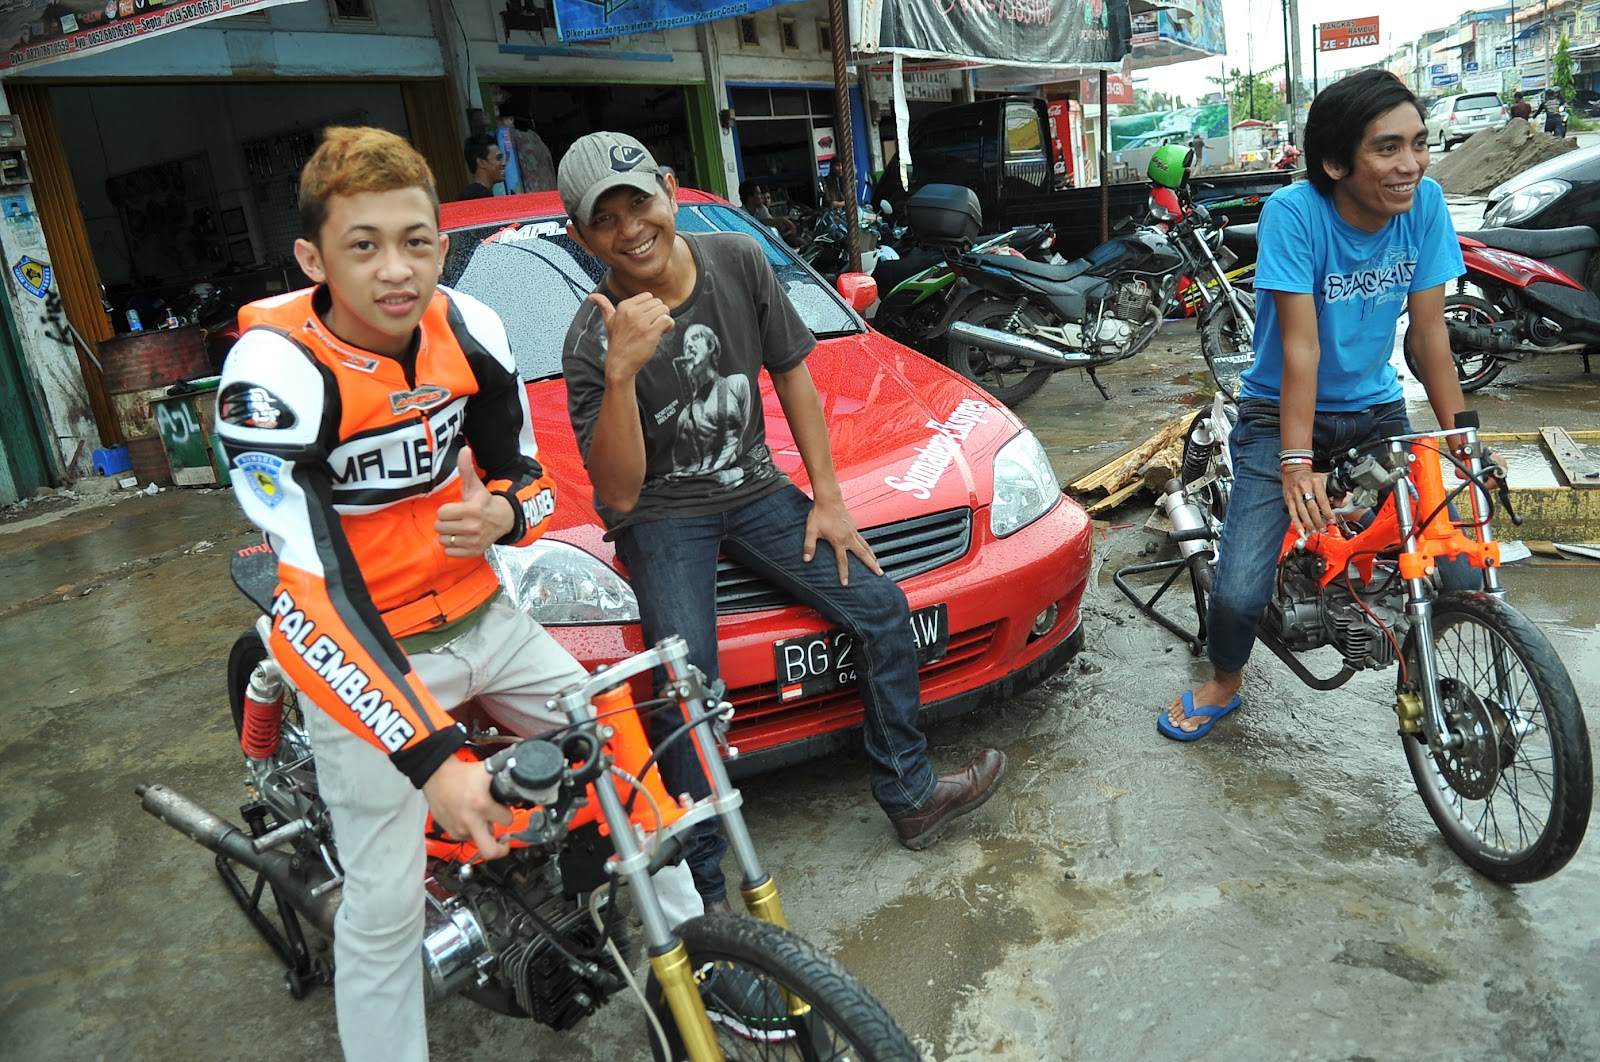 ... Ekspres (MSE) Ikuti Drag Race & Bike IFO Competition I Palembang 2012